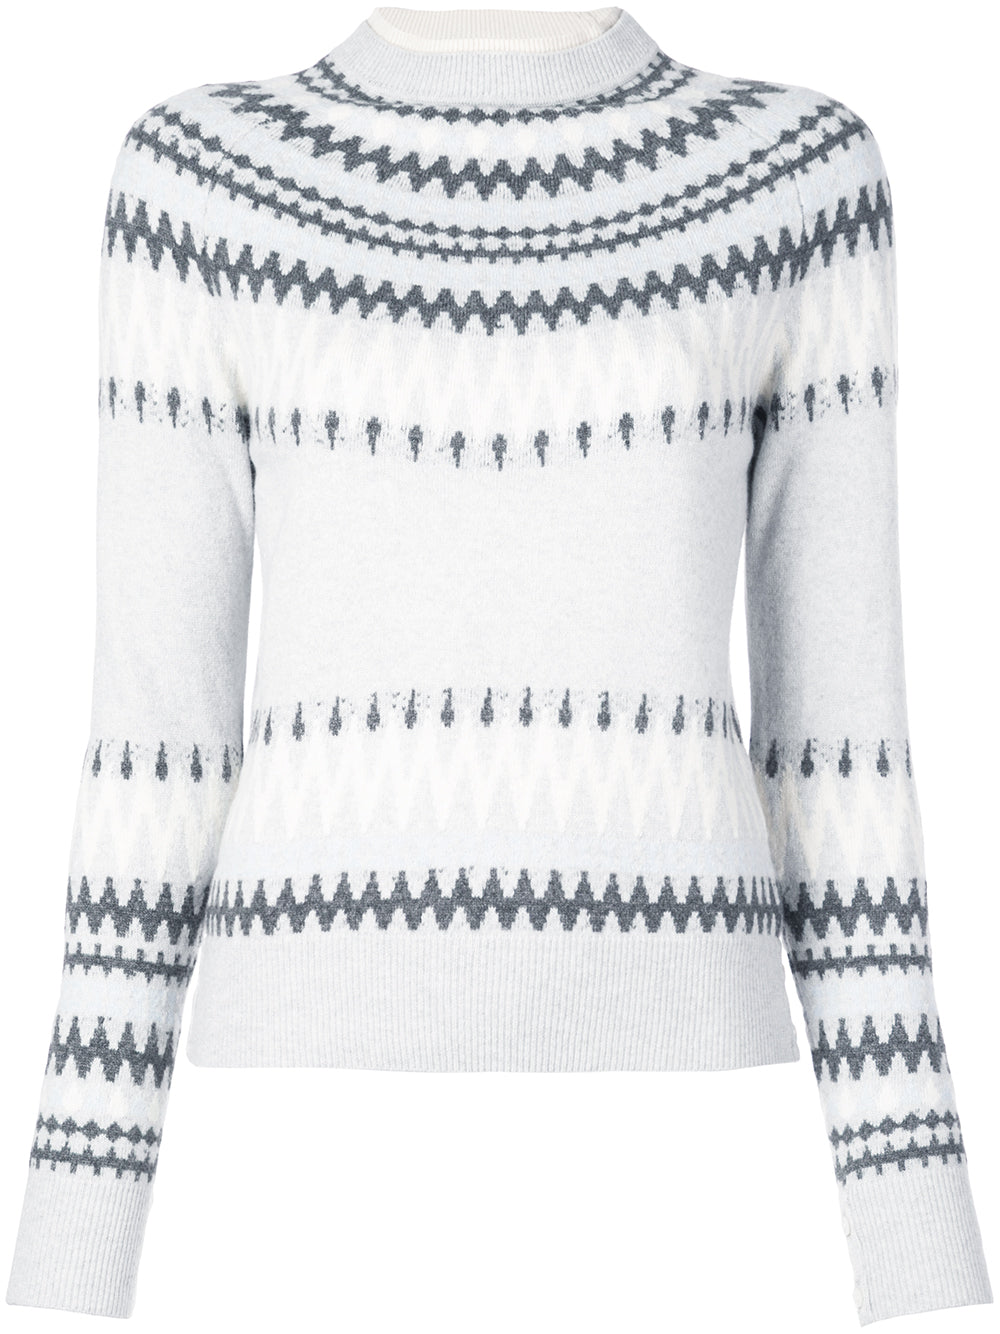 WOOL CASHMERE FAIRISLE CREWNECK SWEATER